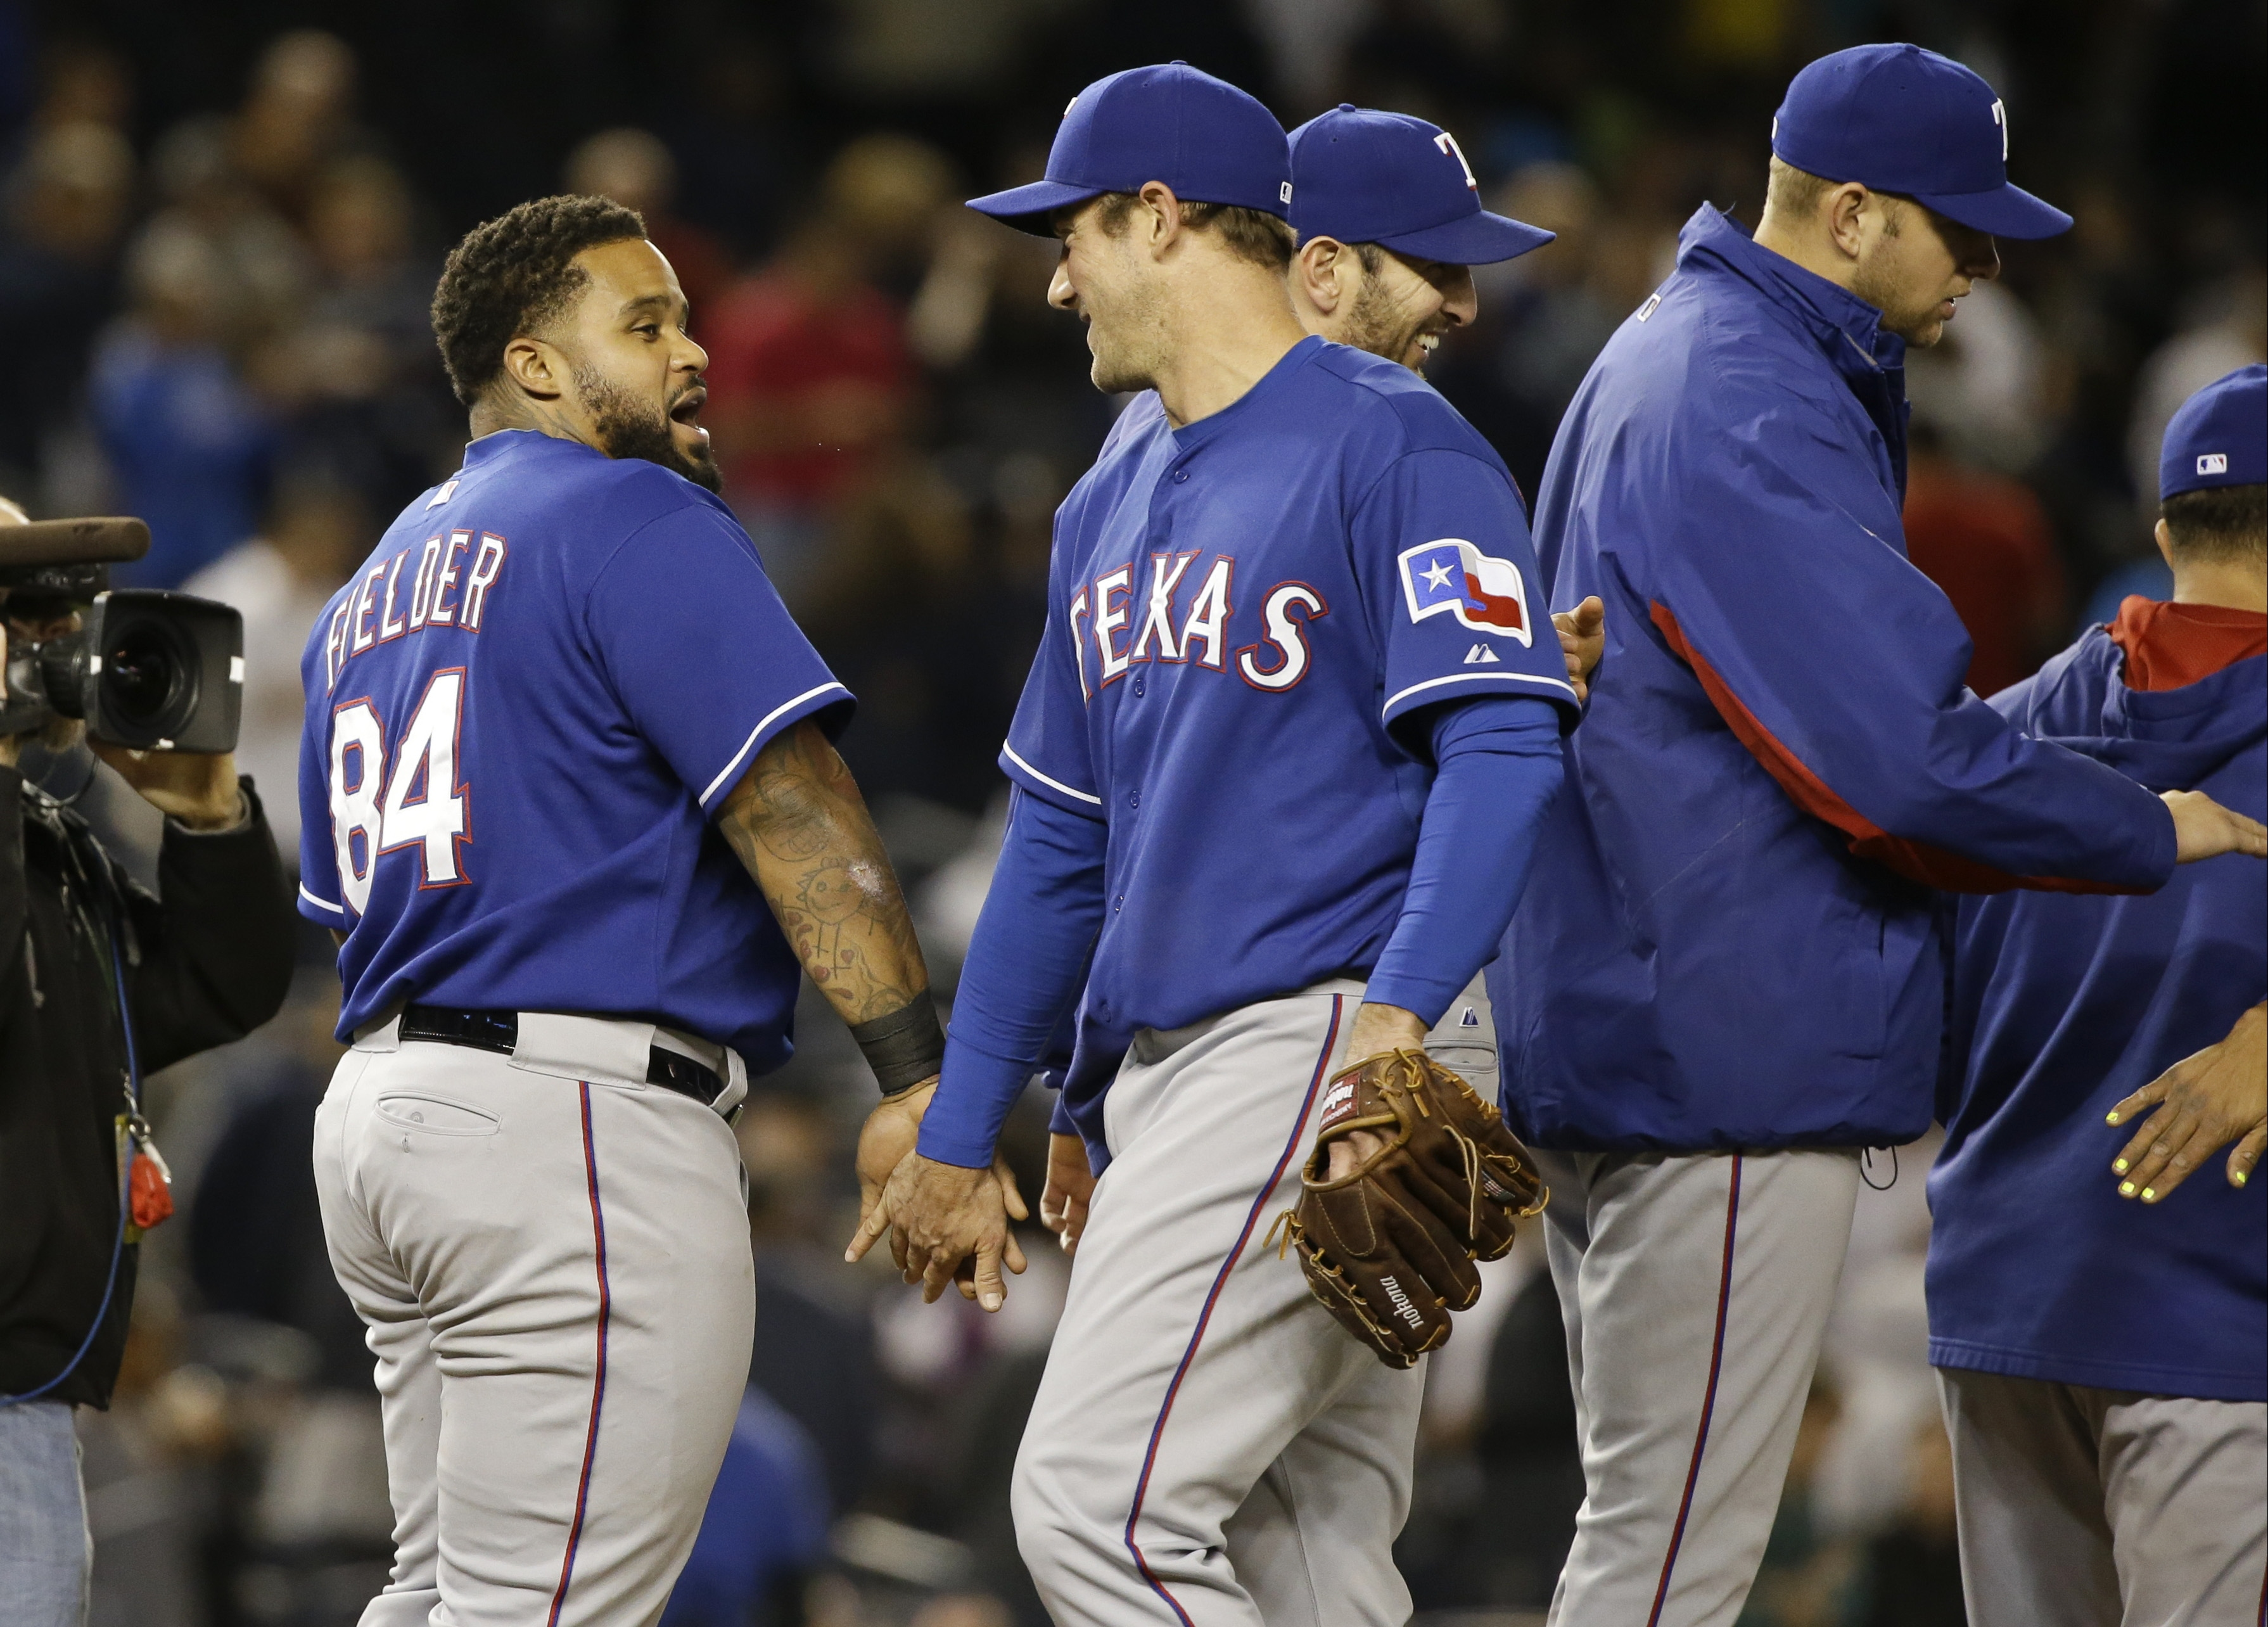 Texas Rangers' Prince Fielder (84) celebrates with teammates after a baseball game against the New York Yankees on Friday, May 22, 2015, in New York. The Rangers won 10-9. (AP Photo/Frank Franklin II)